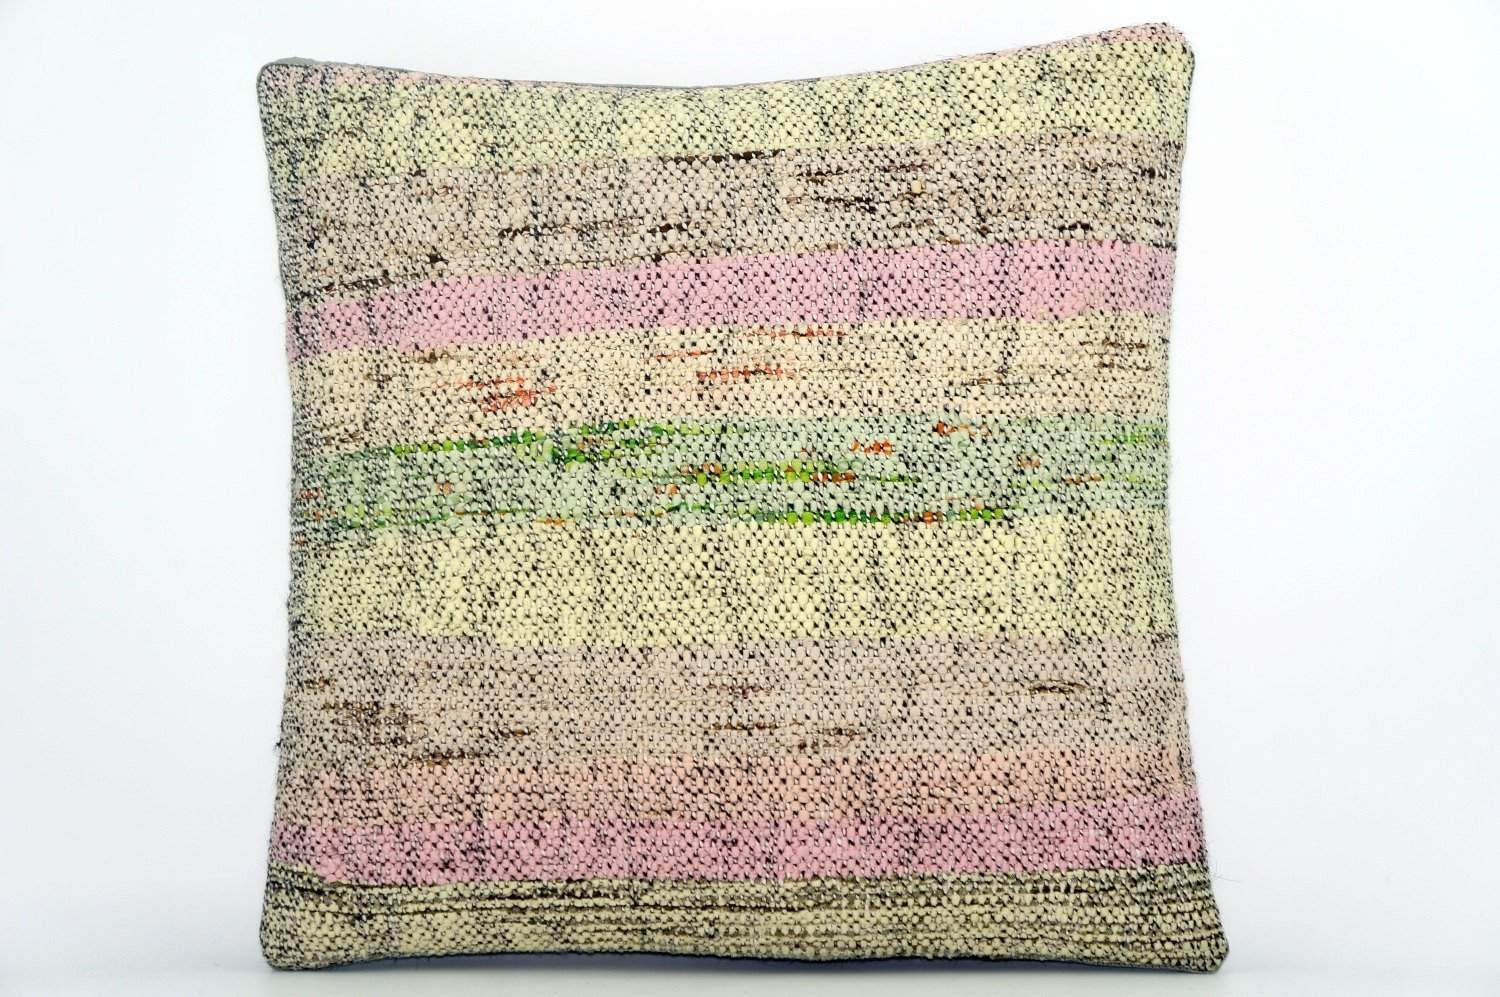 CLEARANCE Handwoven hemp pillow green pink yellow , Decorative Kilim pillow cover  1567_A - kilimpillowstore  - 1